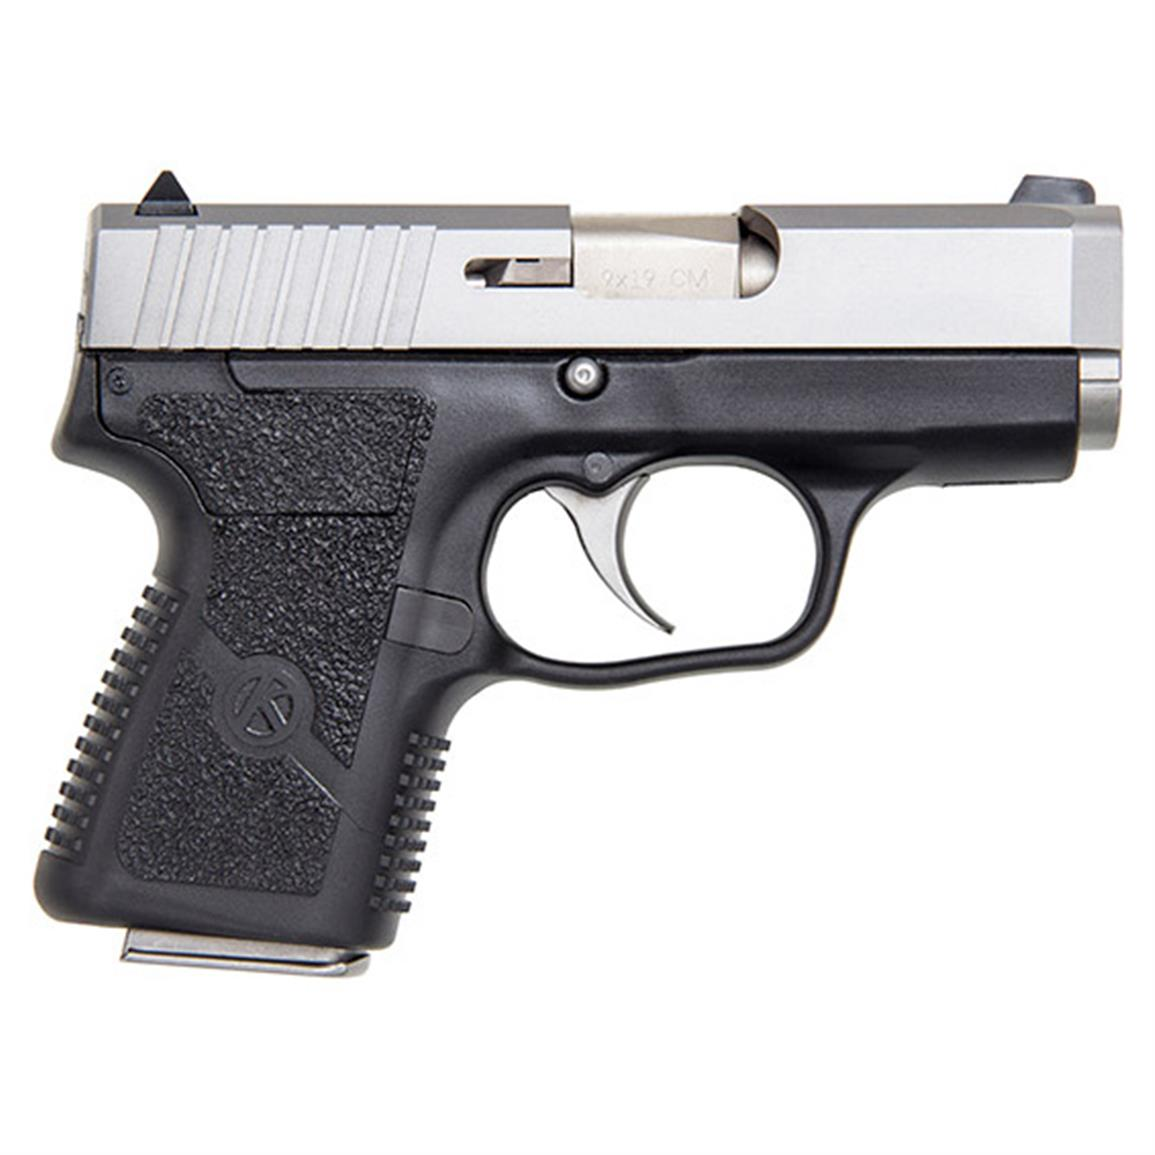 "Kahr CM9, Semi-Automatic, 9mm, Front Night Sights, 3"" Barrel, 6 1 Rounds"